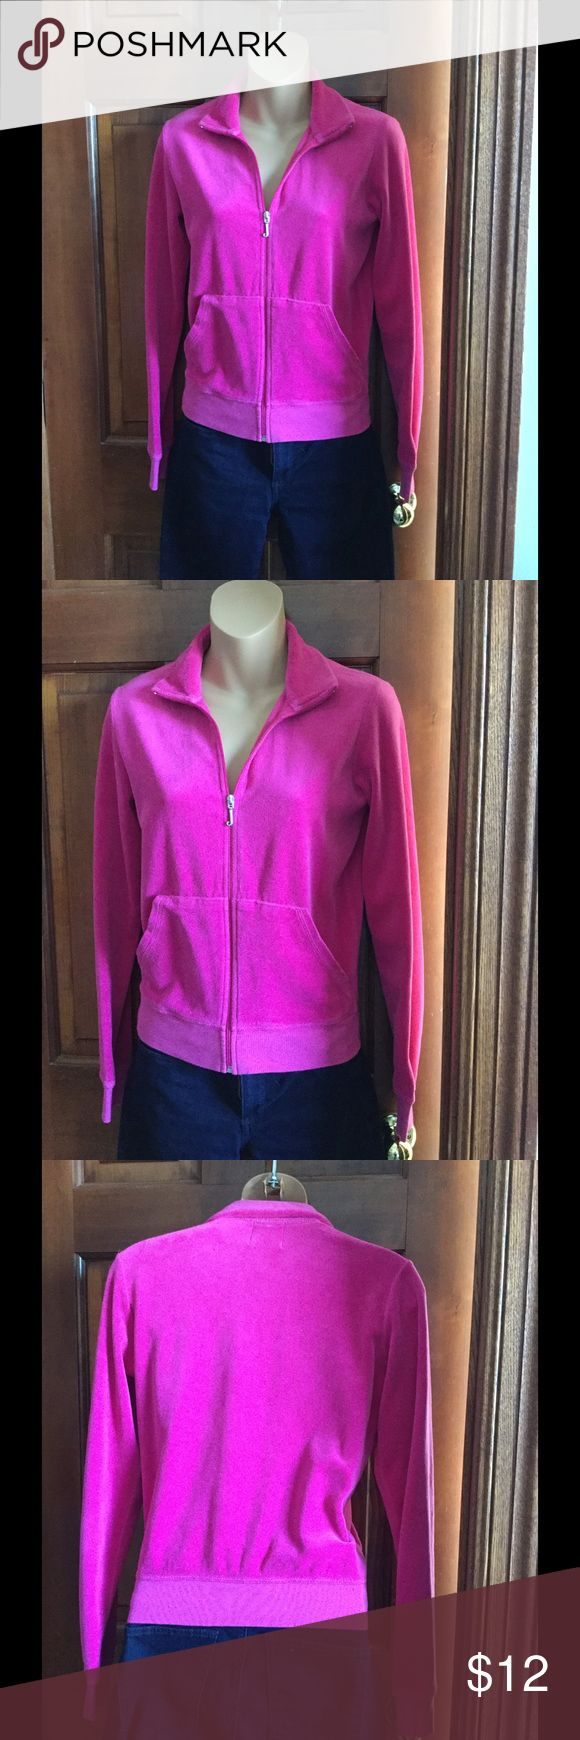 JUICY COUTURE VELOUR JACKET Hot pink velour jacket in good used condition without any rips or stains. Juicy Couture Jackets & Coats